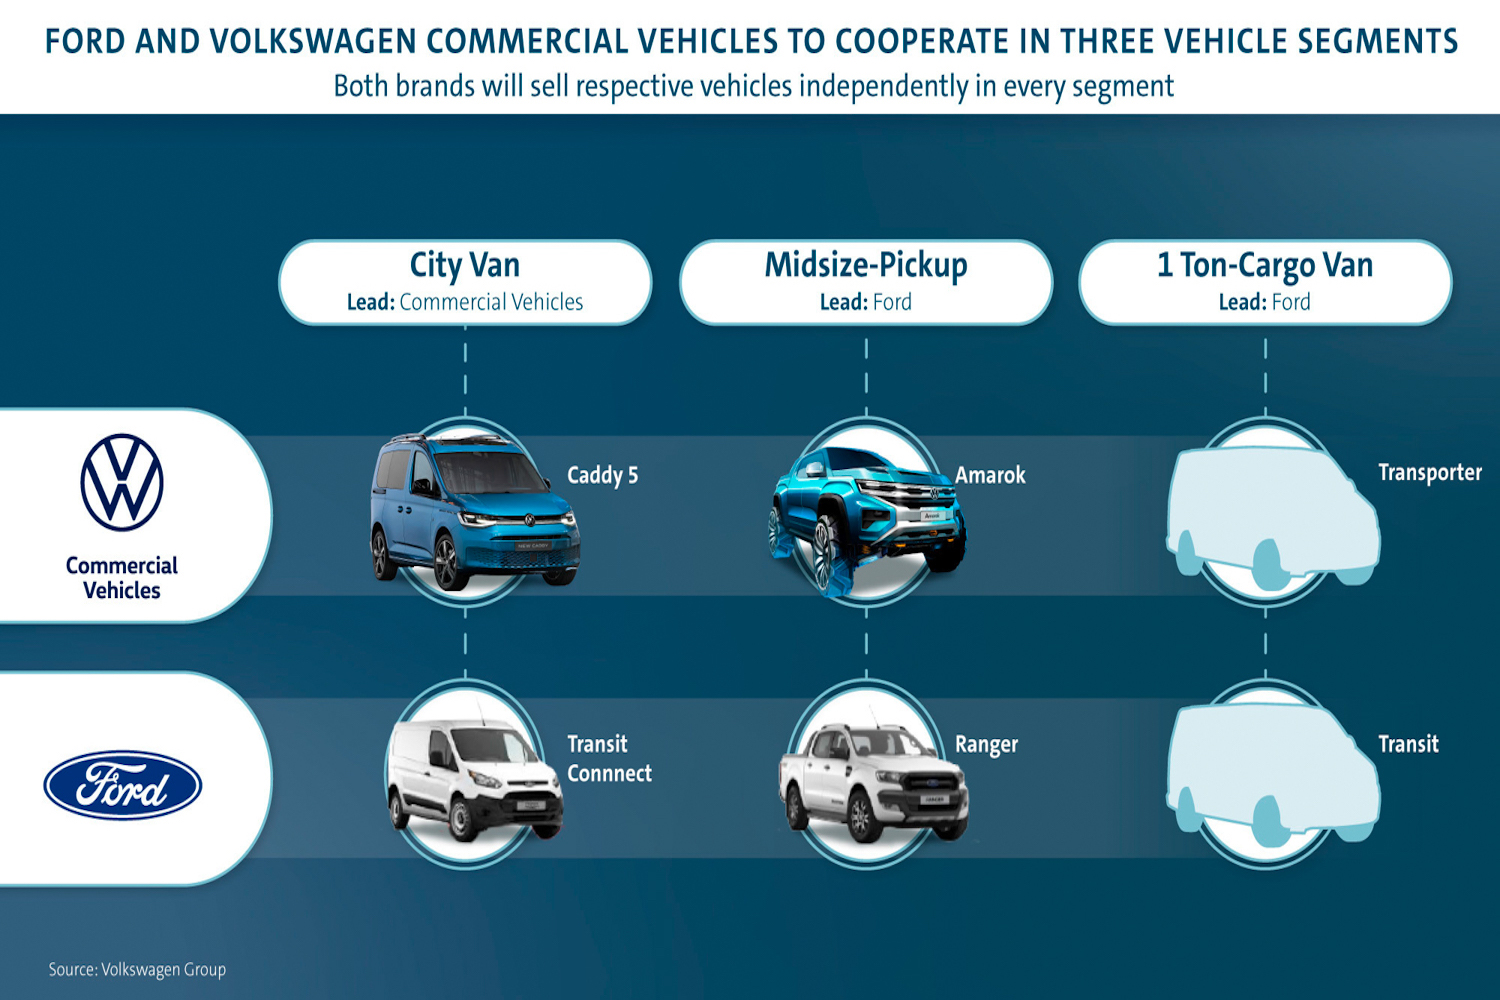 Ford and Volkswagen Commercial Vehicles outline collaboration plans